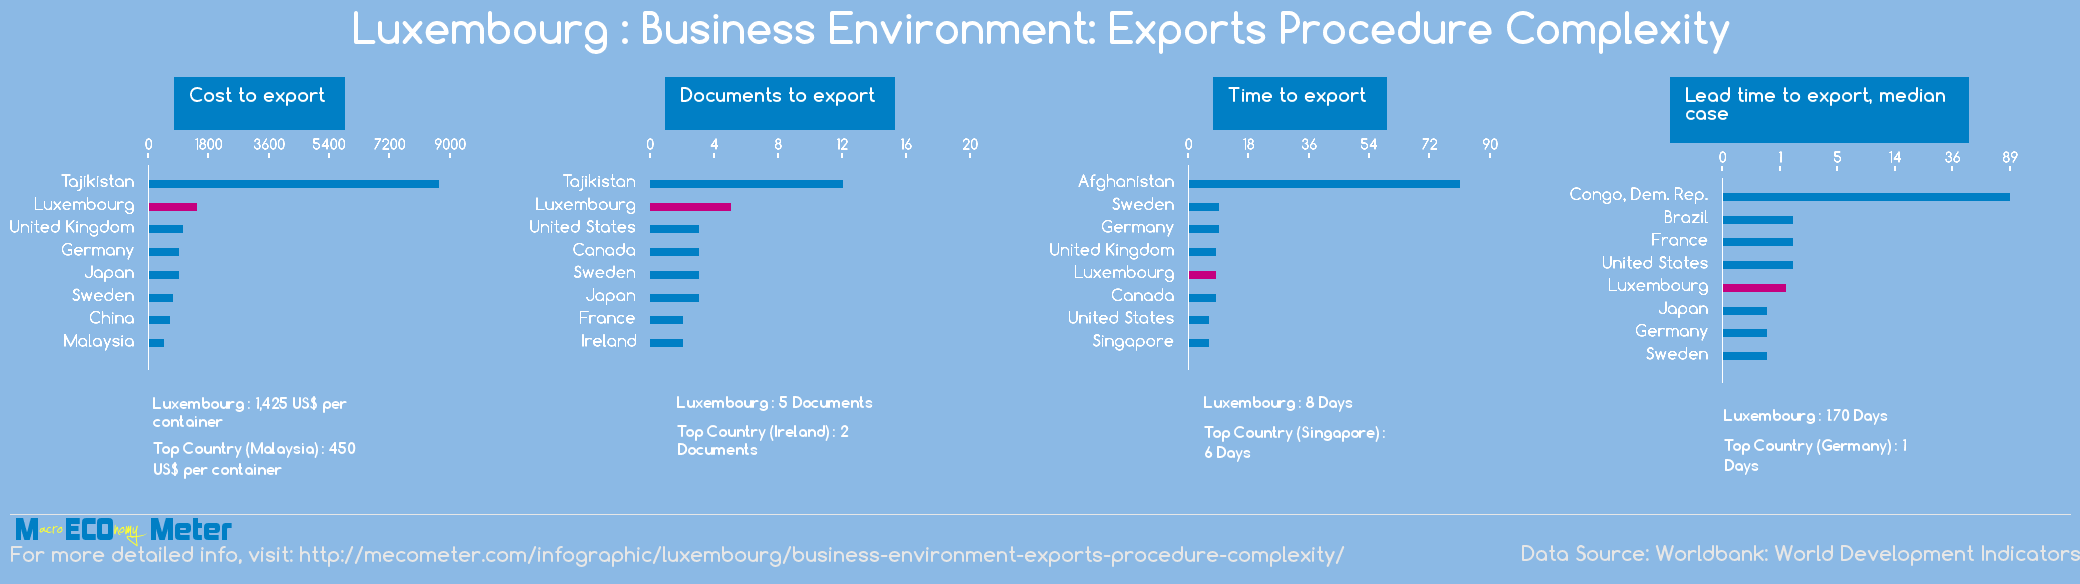 Luxembourg : Business Environment: Exports Procedure Complexity